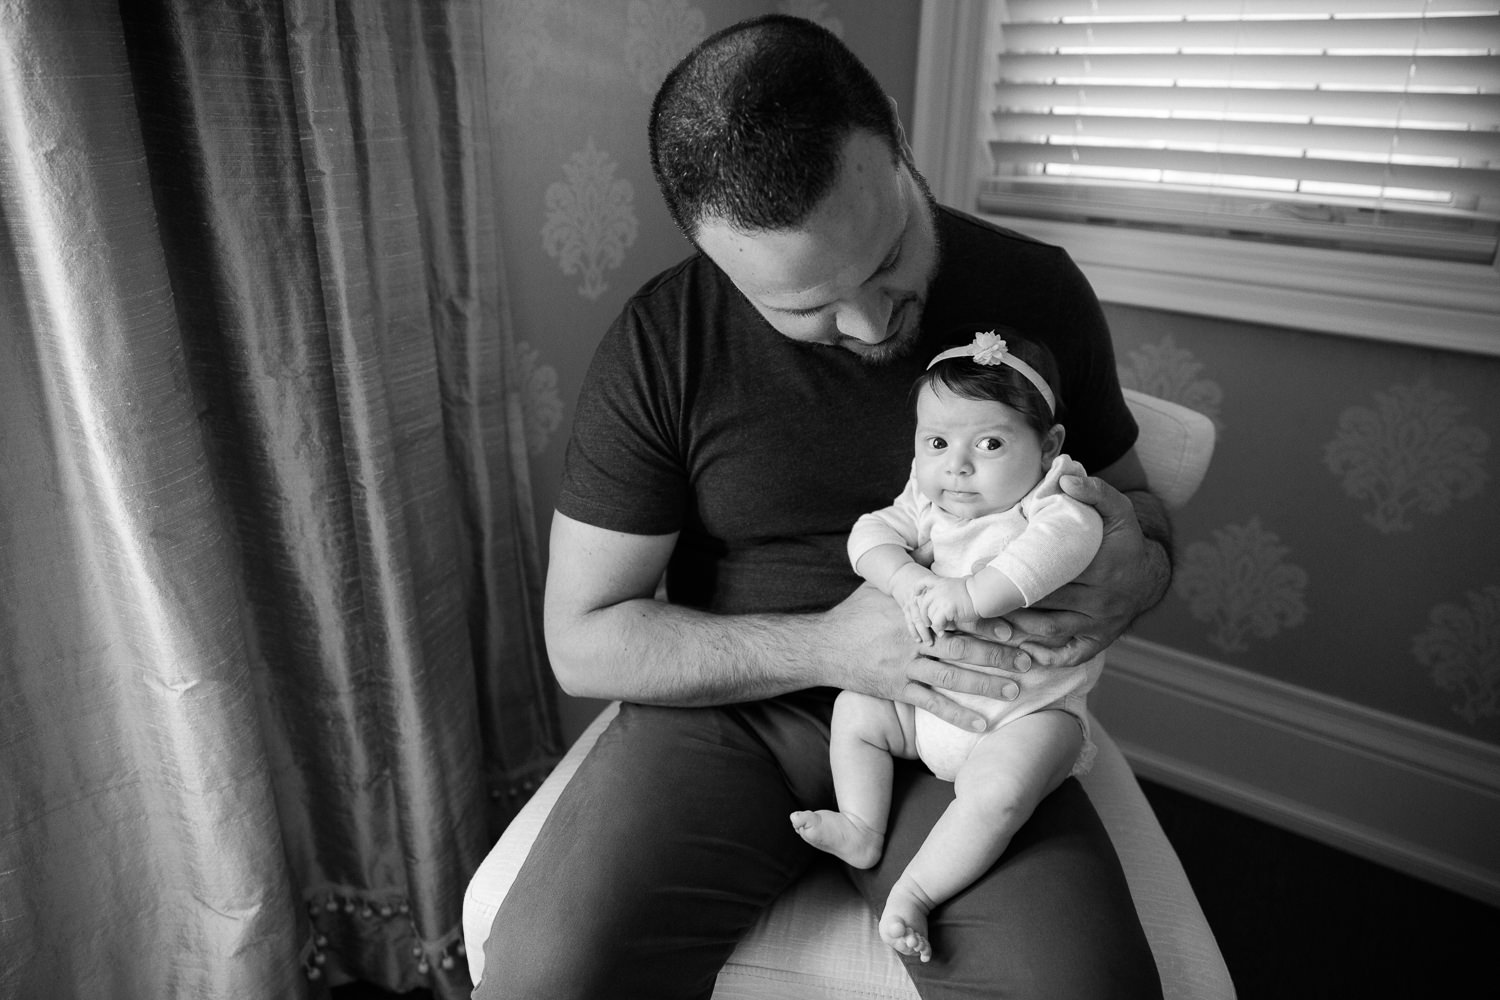 new dad in jeans and t shirt sitting in chair holding and smiling at 2 month old baby girl in onesie who is sitting on his knee looking at the camera -  GTA In-Home Photos